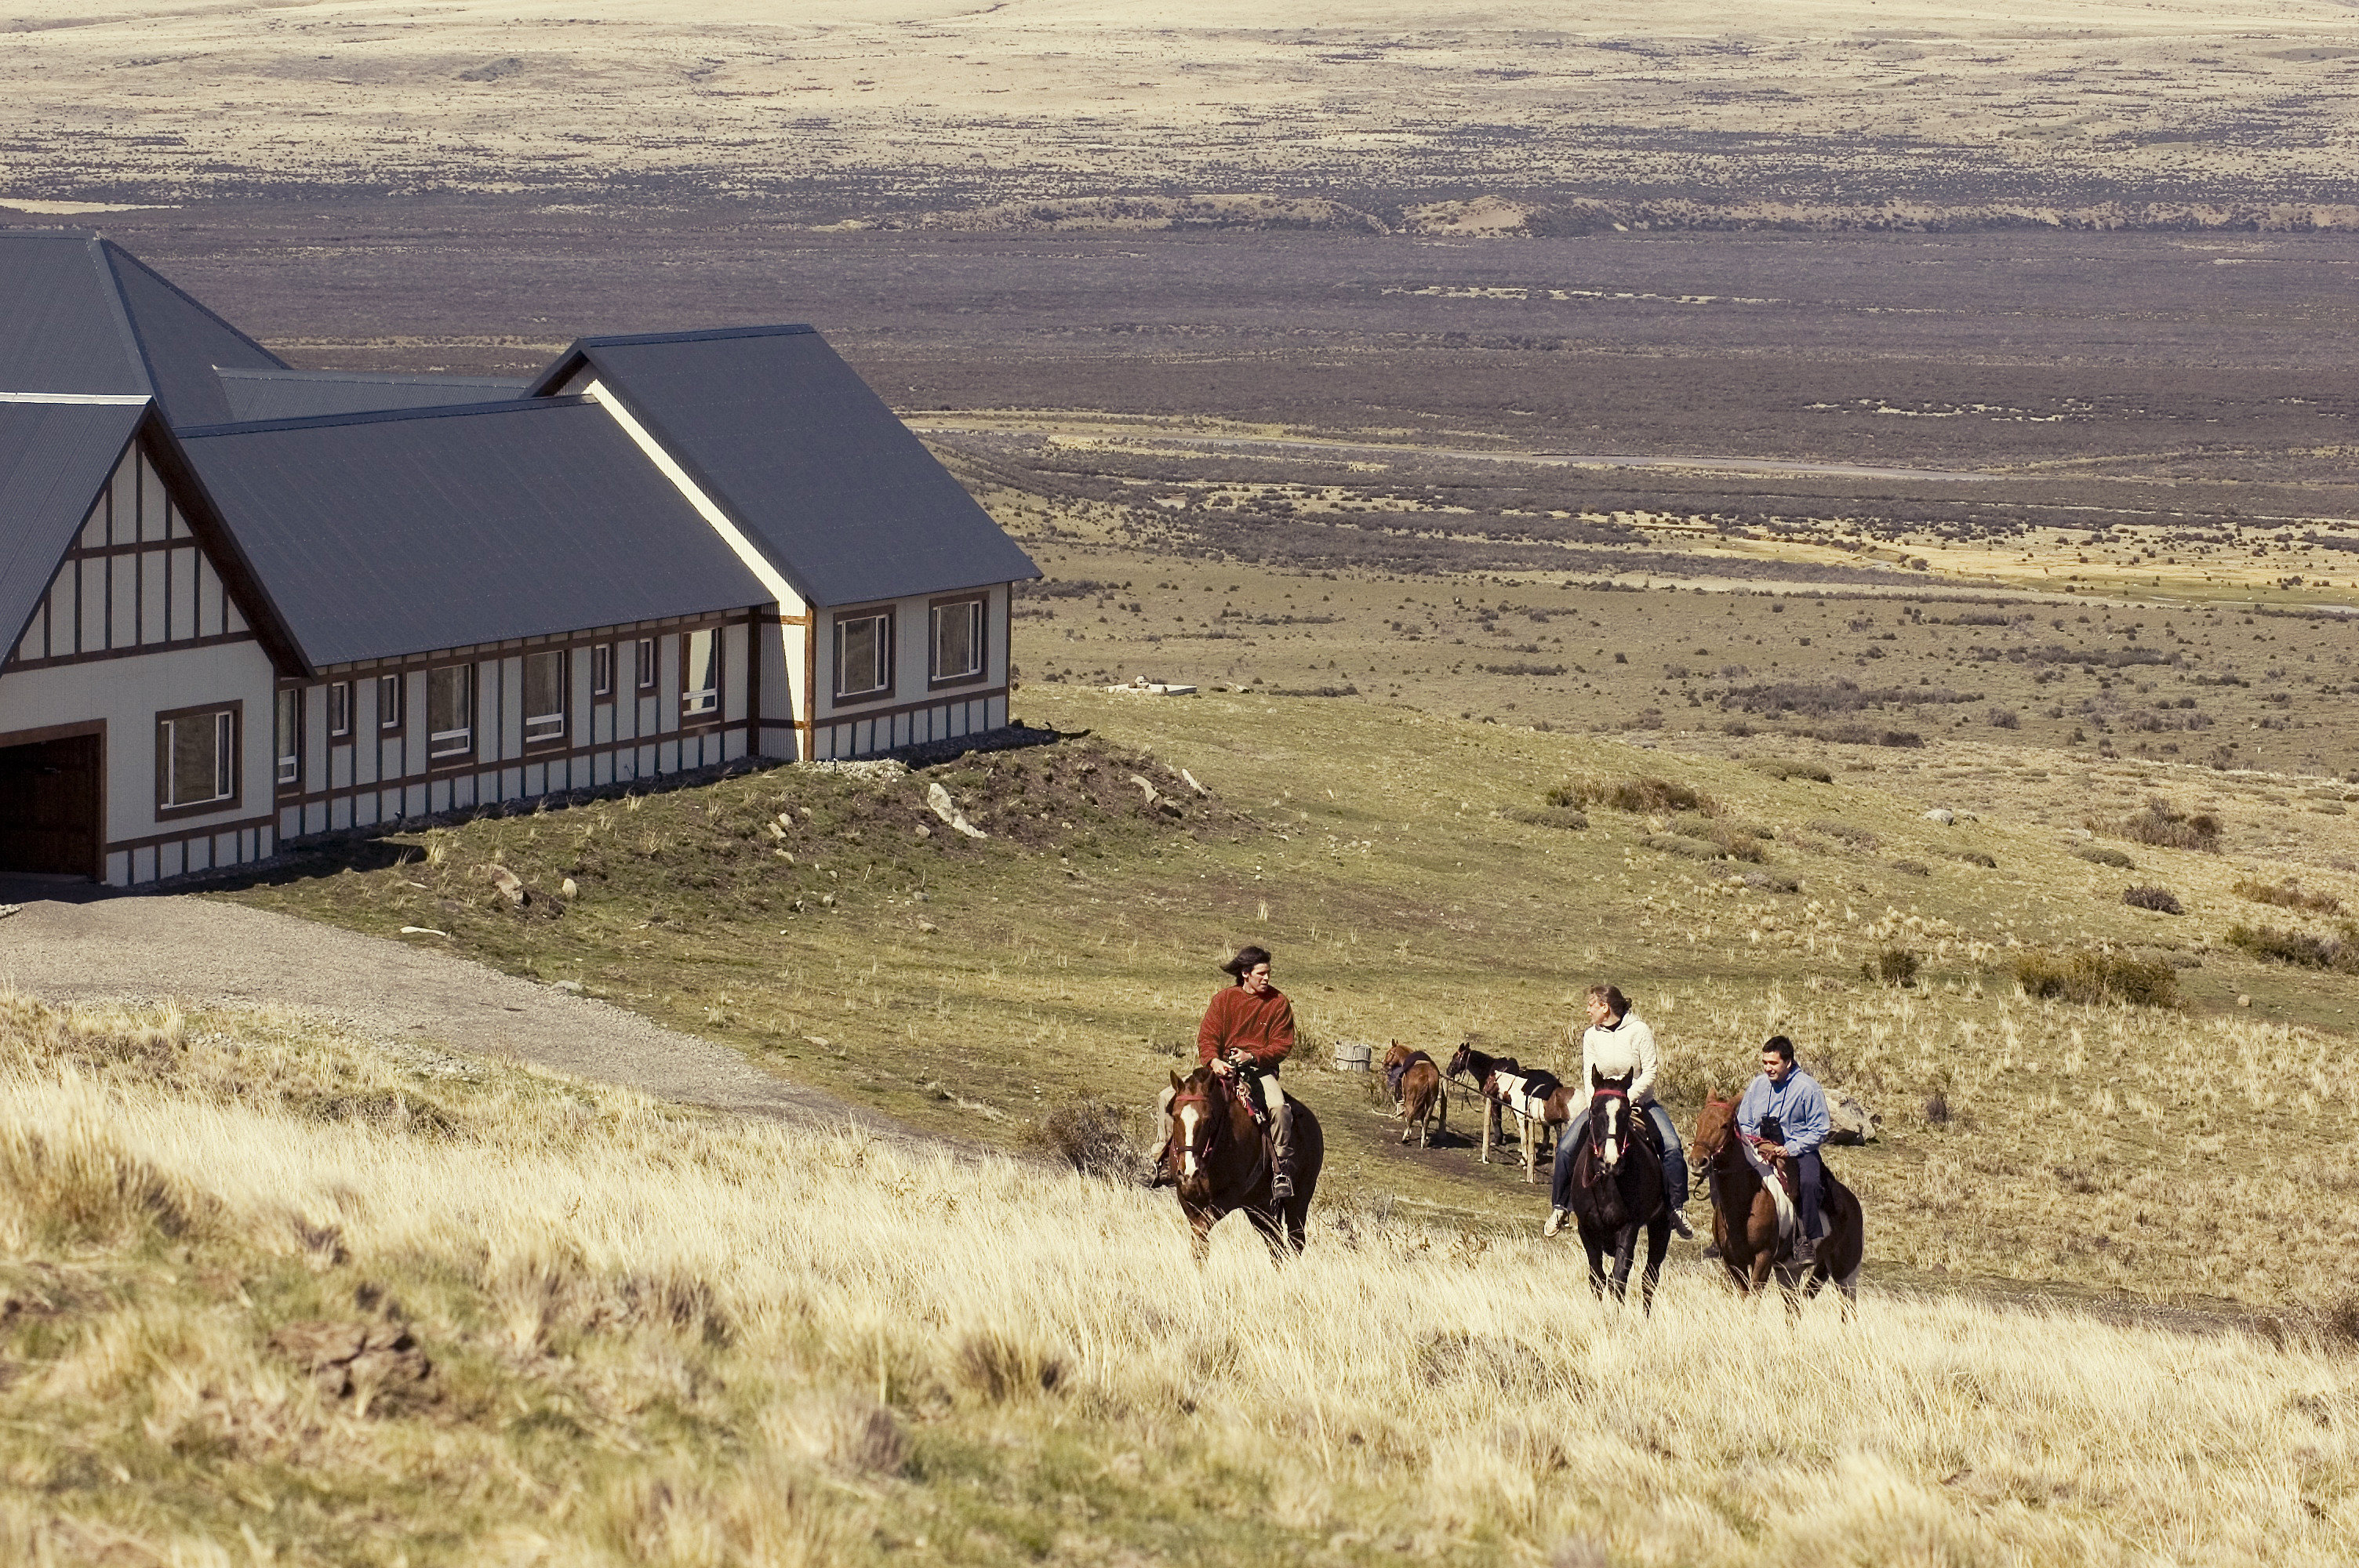 Hotels Outdoors + Adventure grass outdoor field horse prairie rural area Farm landscape agriculture Ranch open horse like mammal farm building barn plain highland